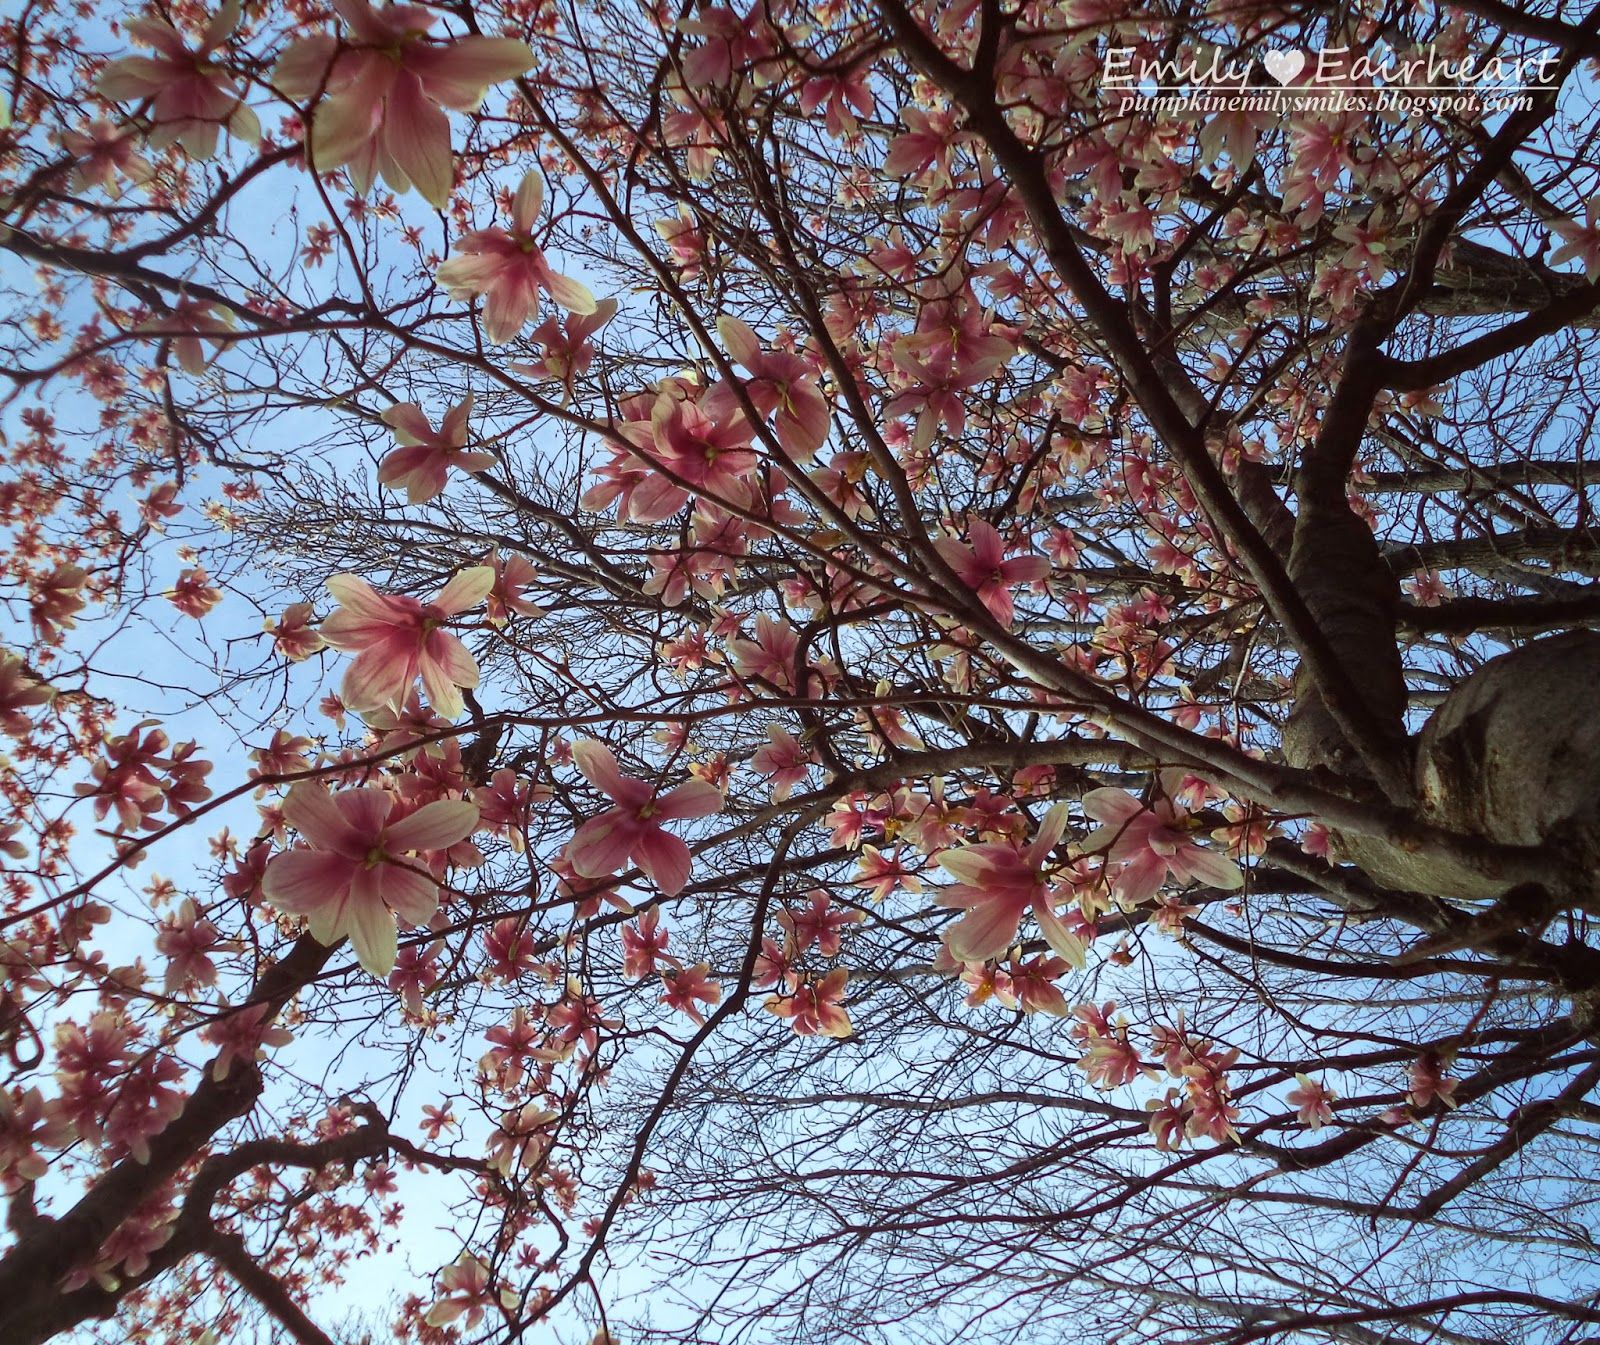 Another awesome perspective shot of a tree with flowers. #Flowers #Pretty #Beautiful #Pink #Outdoors #Photography